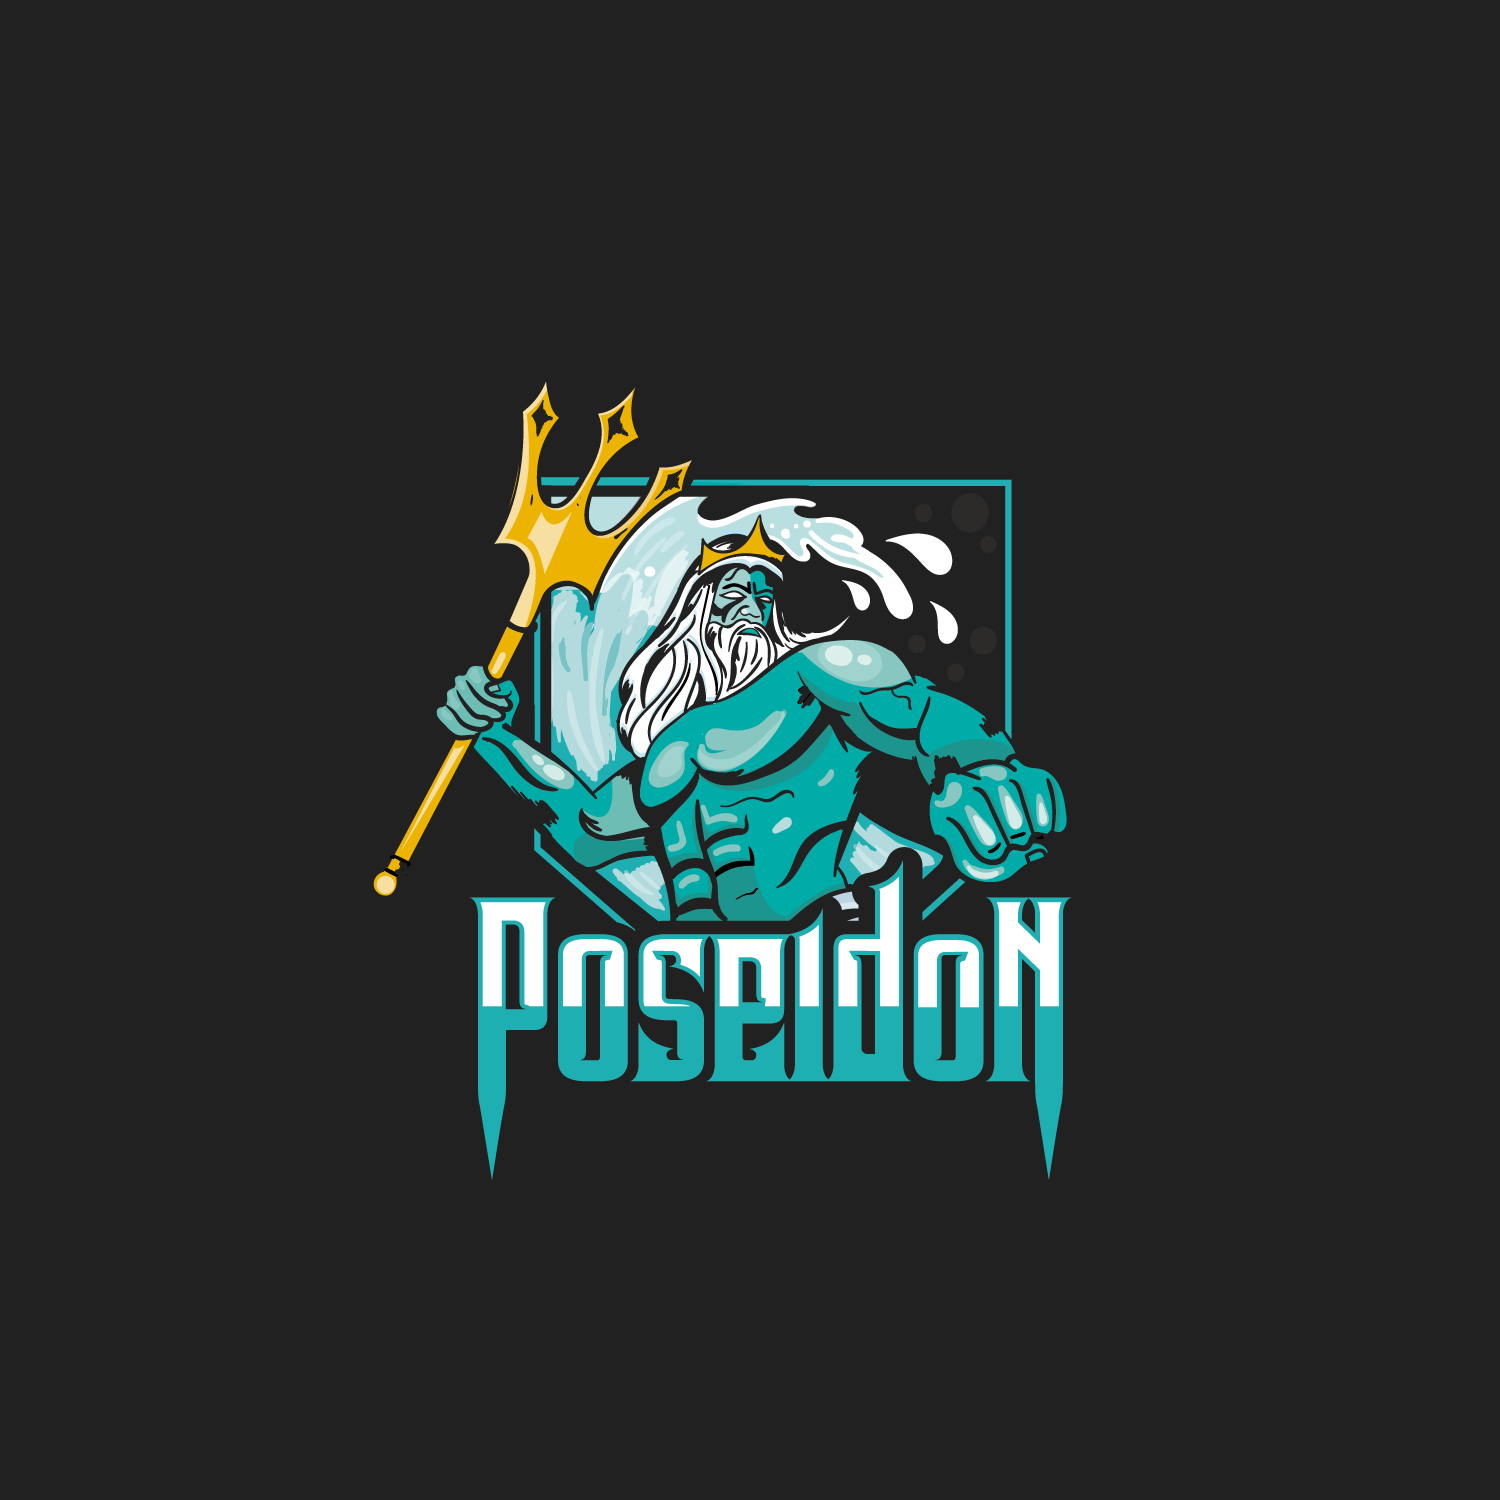 Logo Design for Poseidon by WooW Designs.